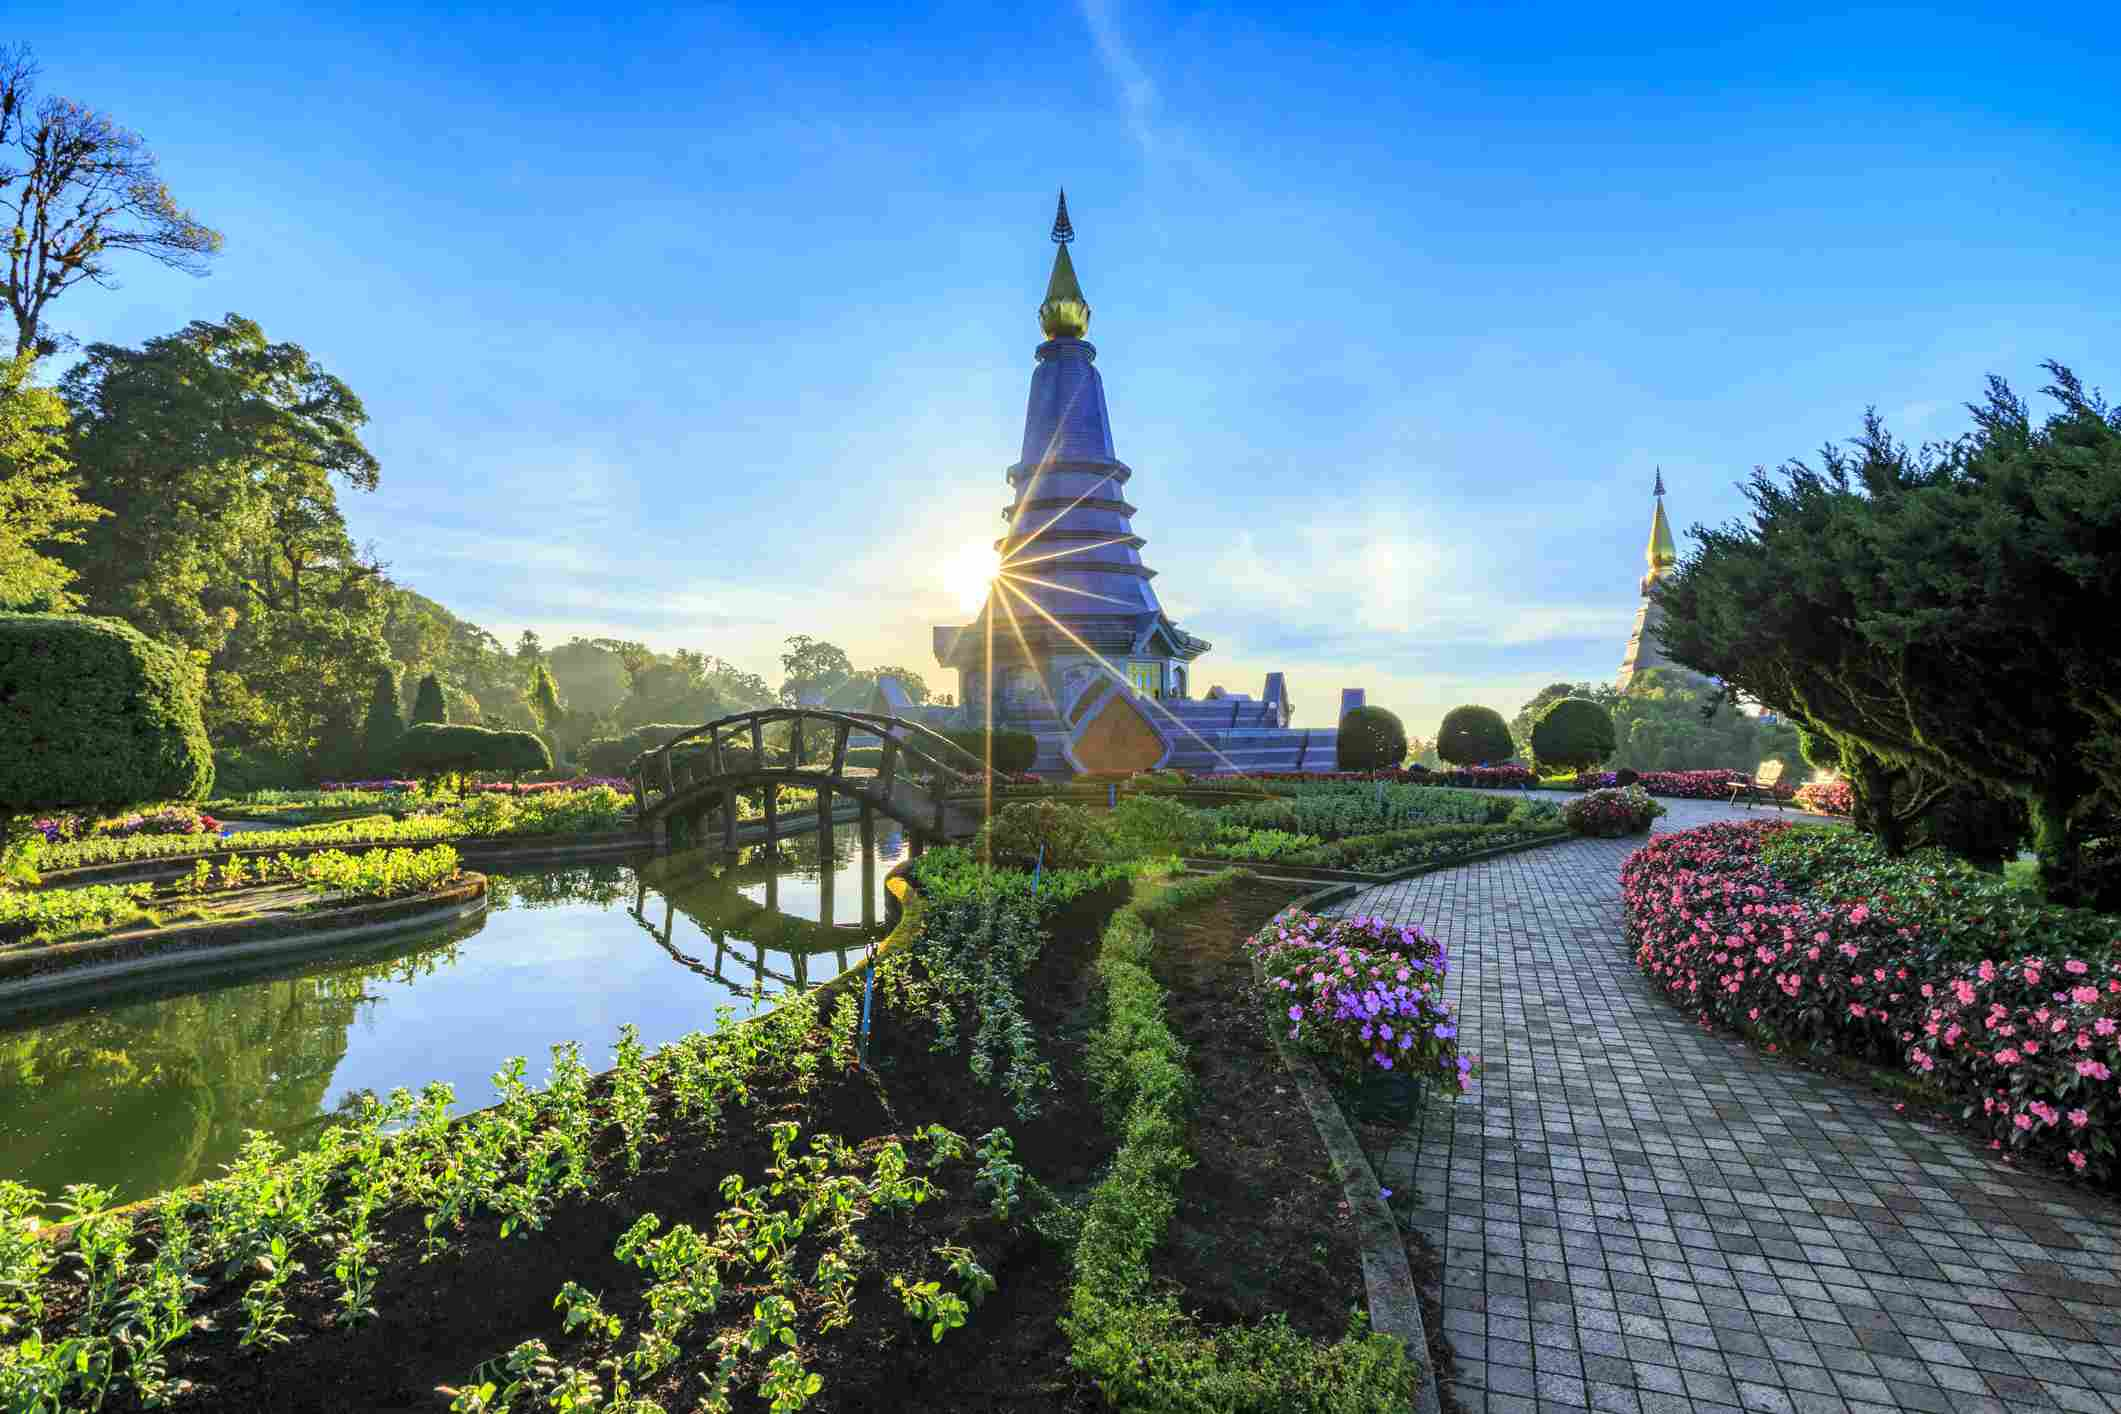 Flower park in Chiang Mai, Thailand